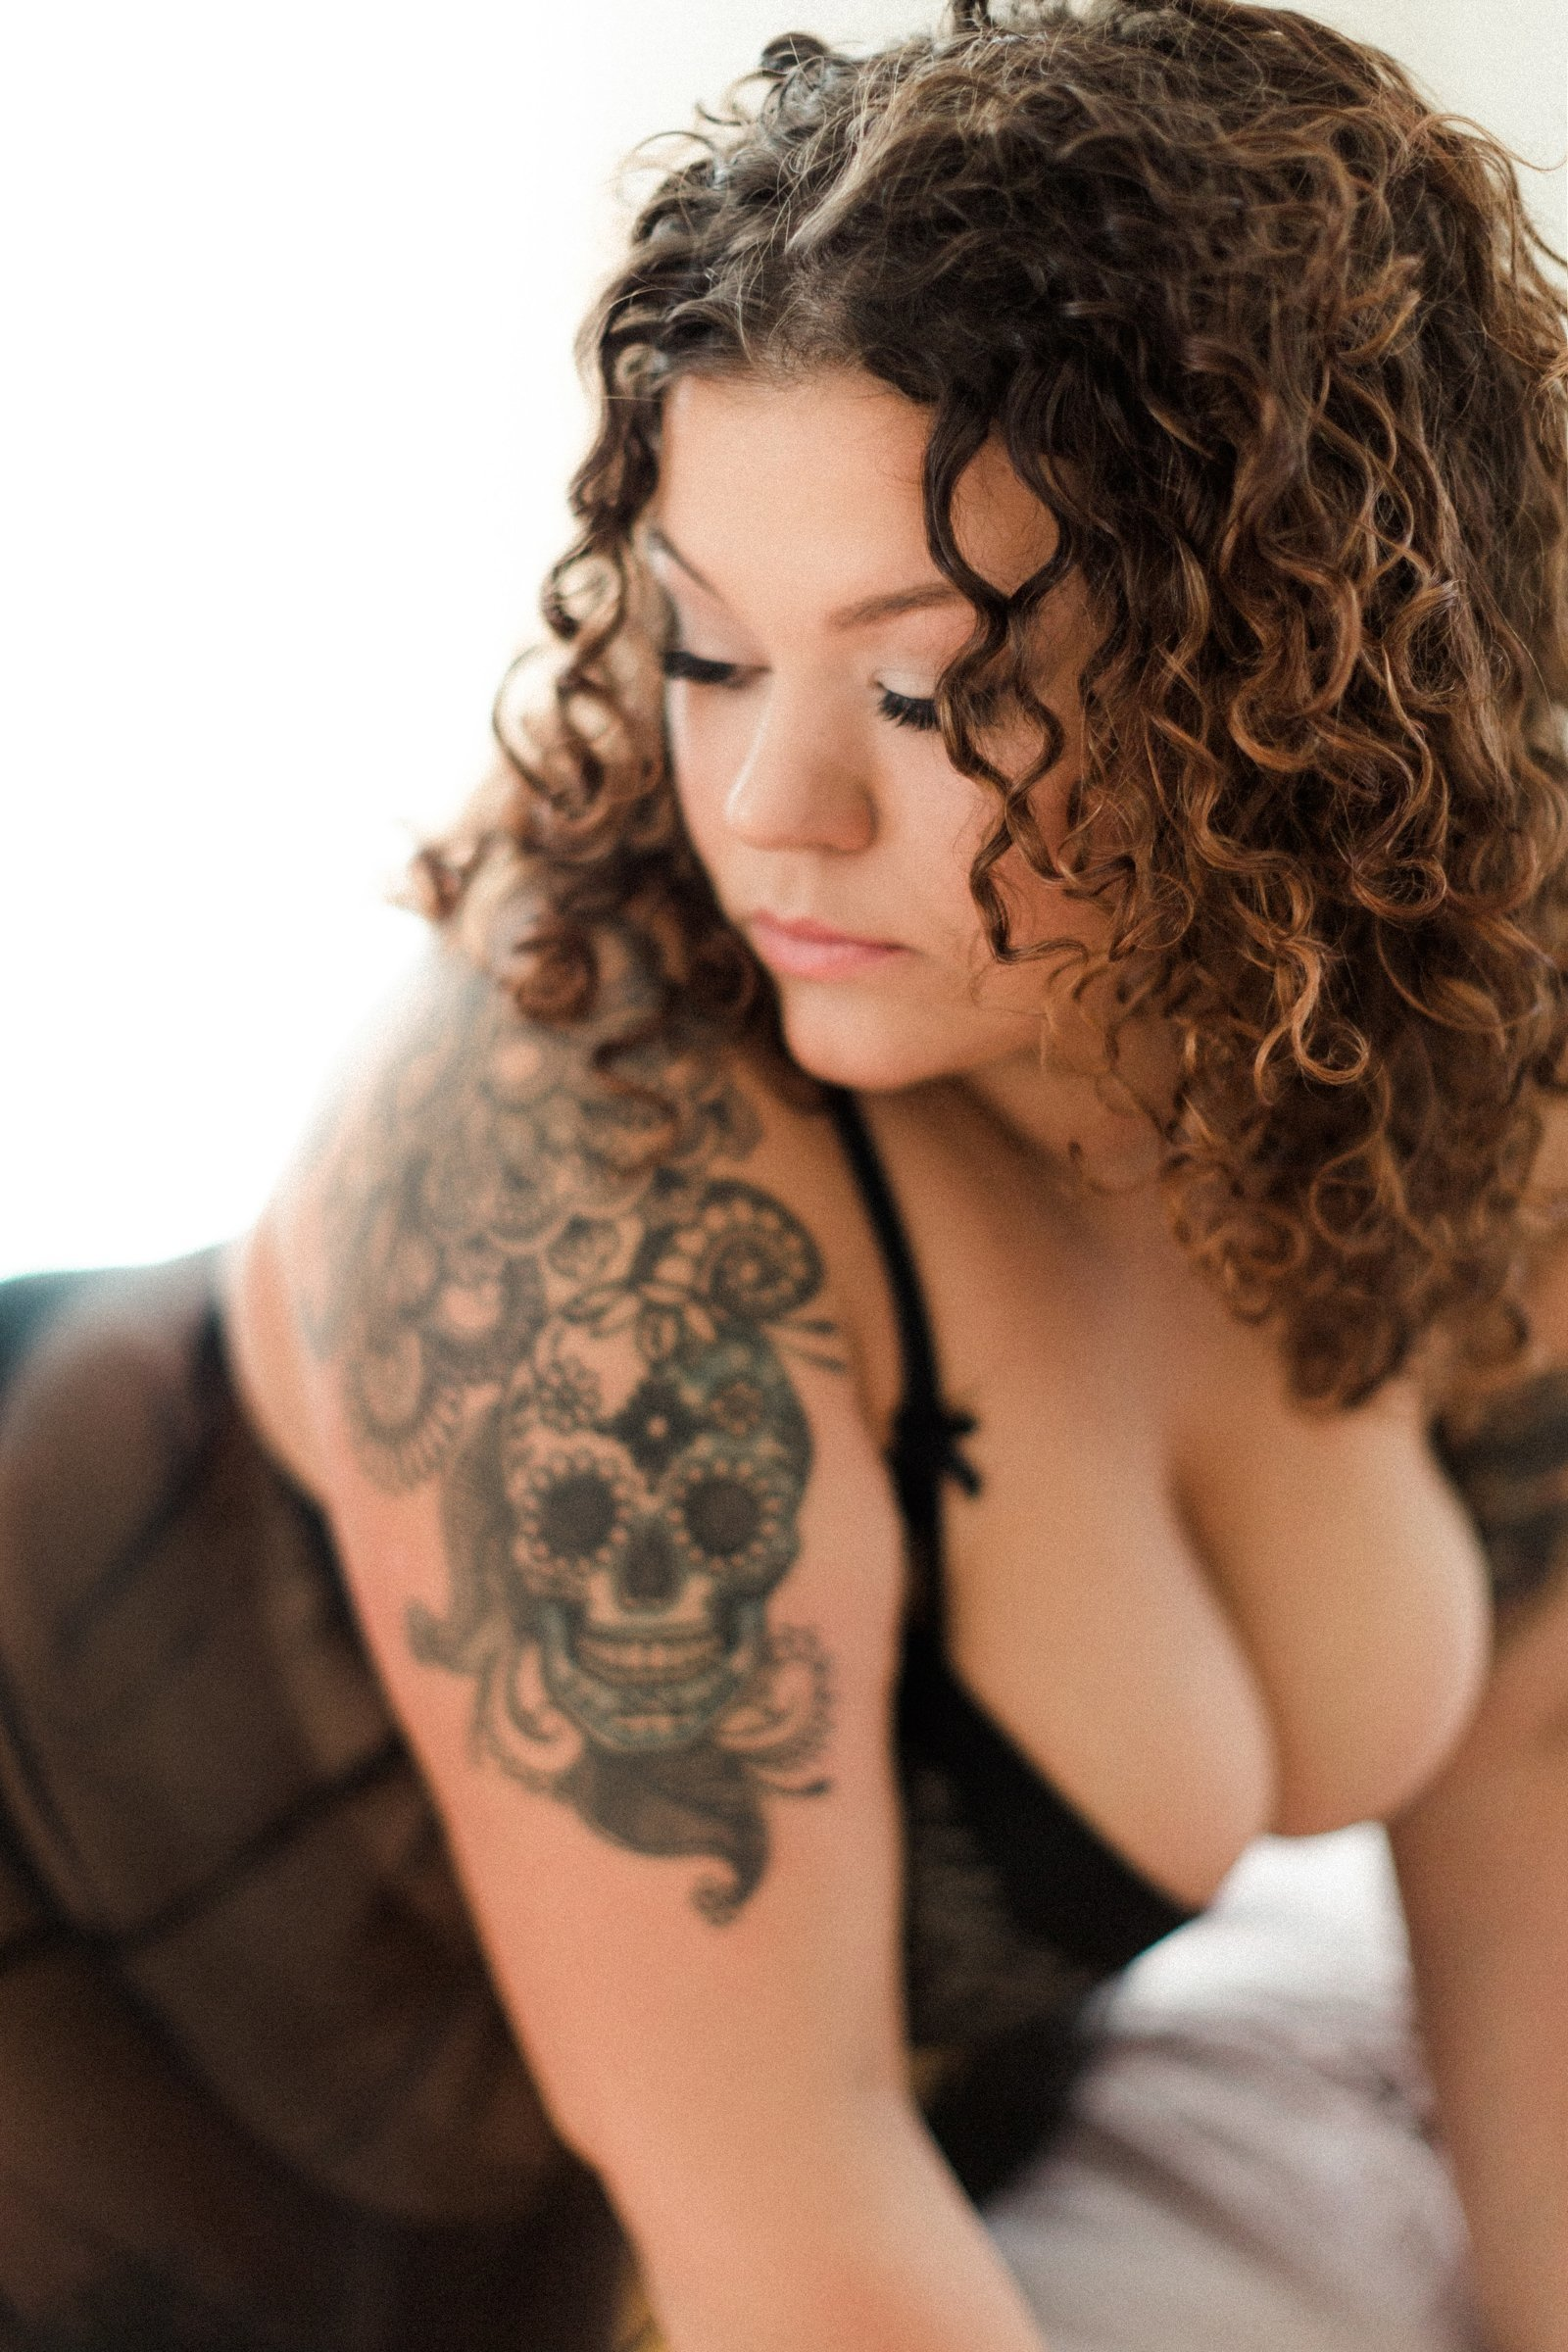 i-norfolk-va-boudoir-photos_1544